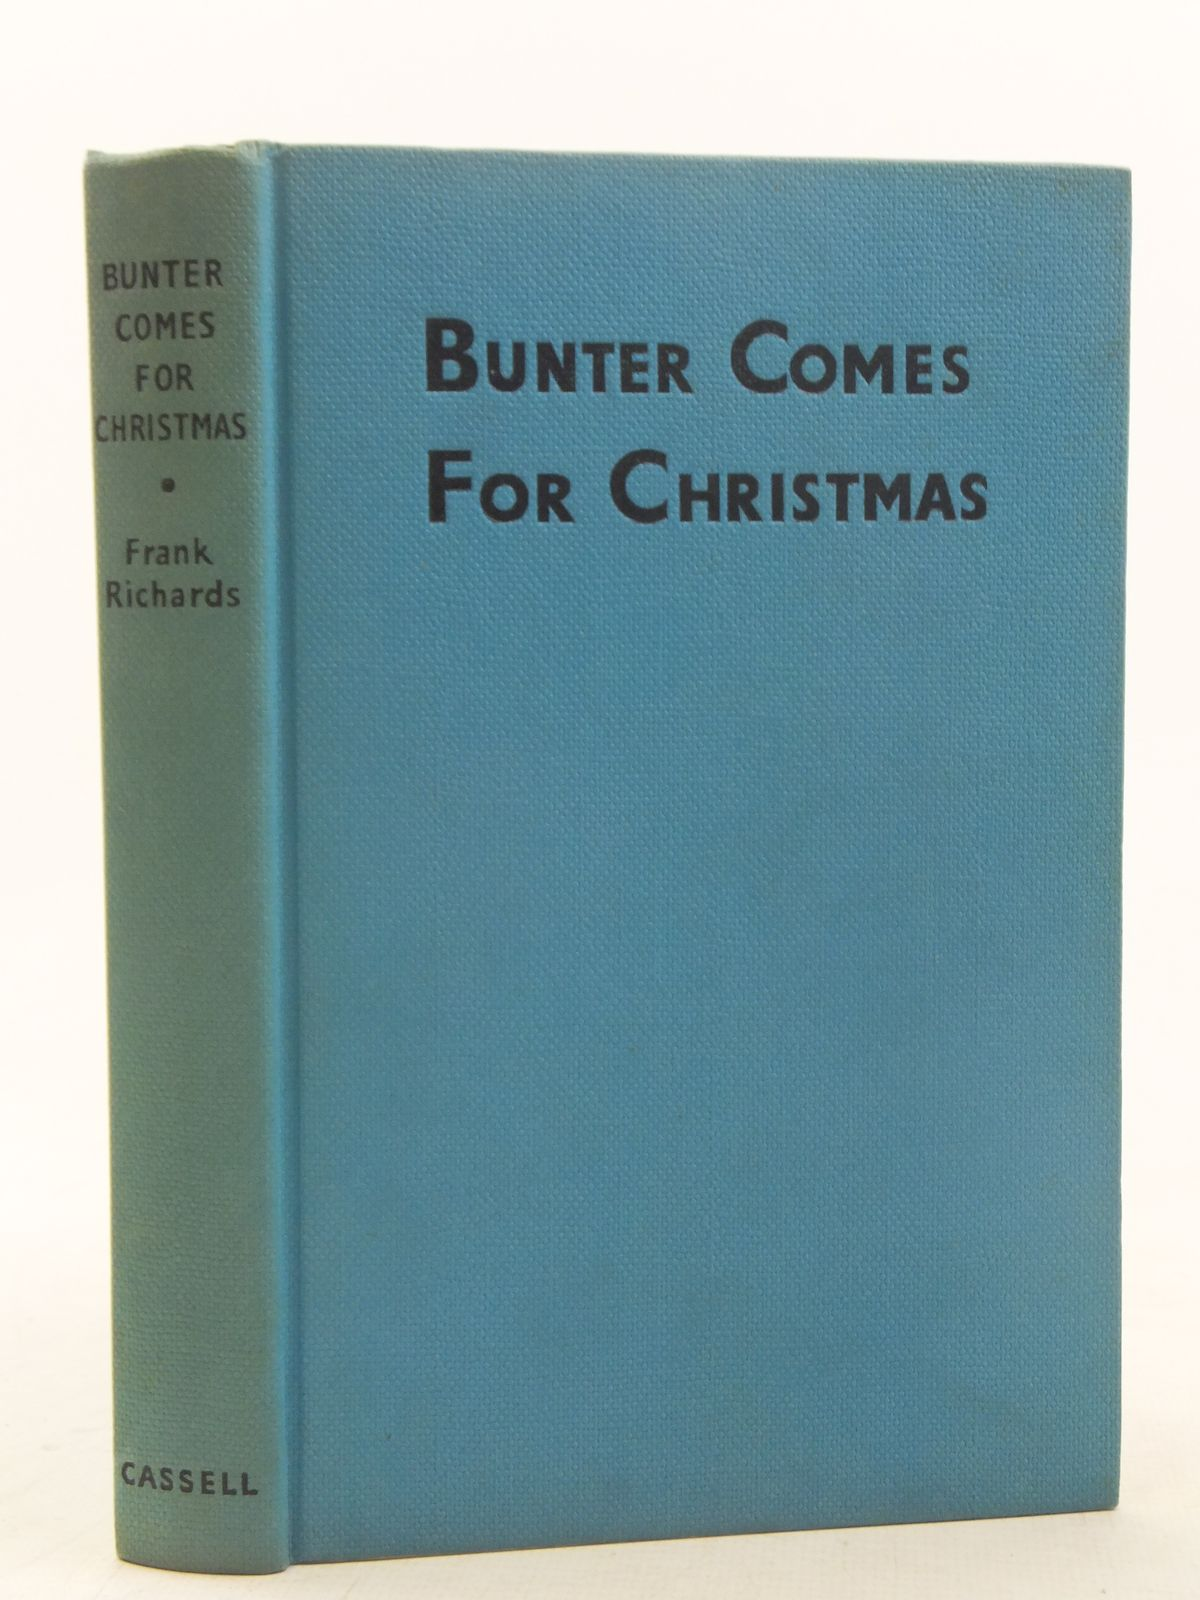 Photo of BUNTER COMES FOR CHRISTMAS written by Richards, Frank illustrated by Chapman, C.H. published by Cassell (STOCK CODE: 2117524)  for sale by Stella & Rose's Books